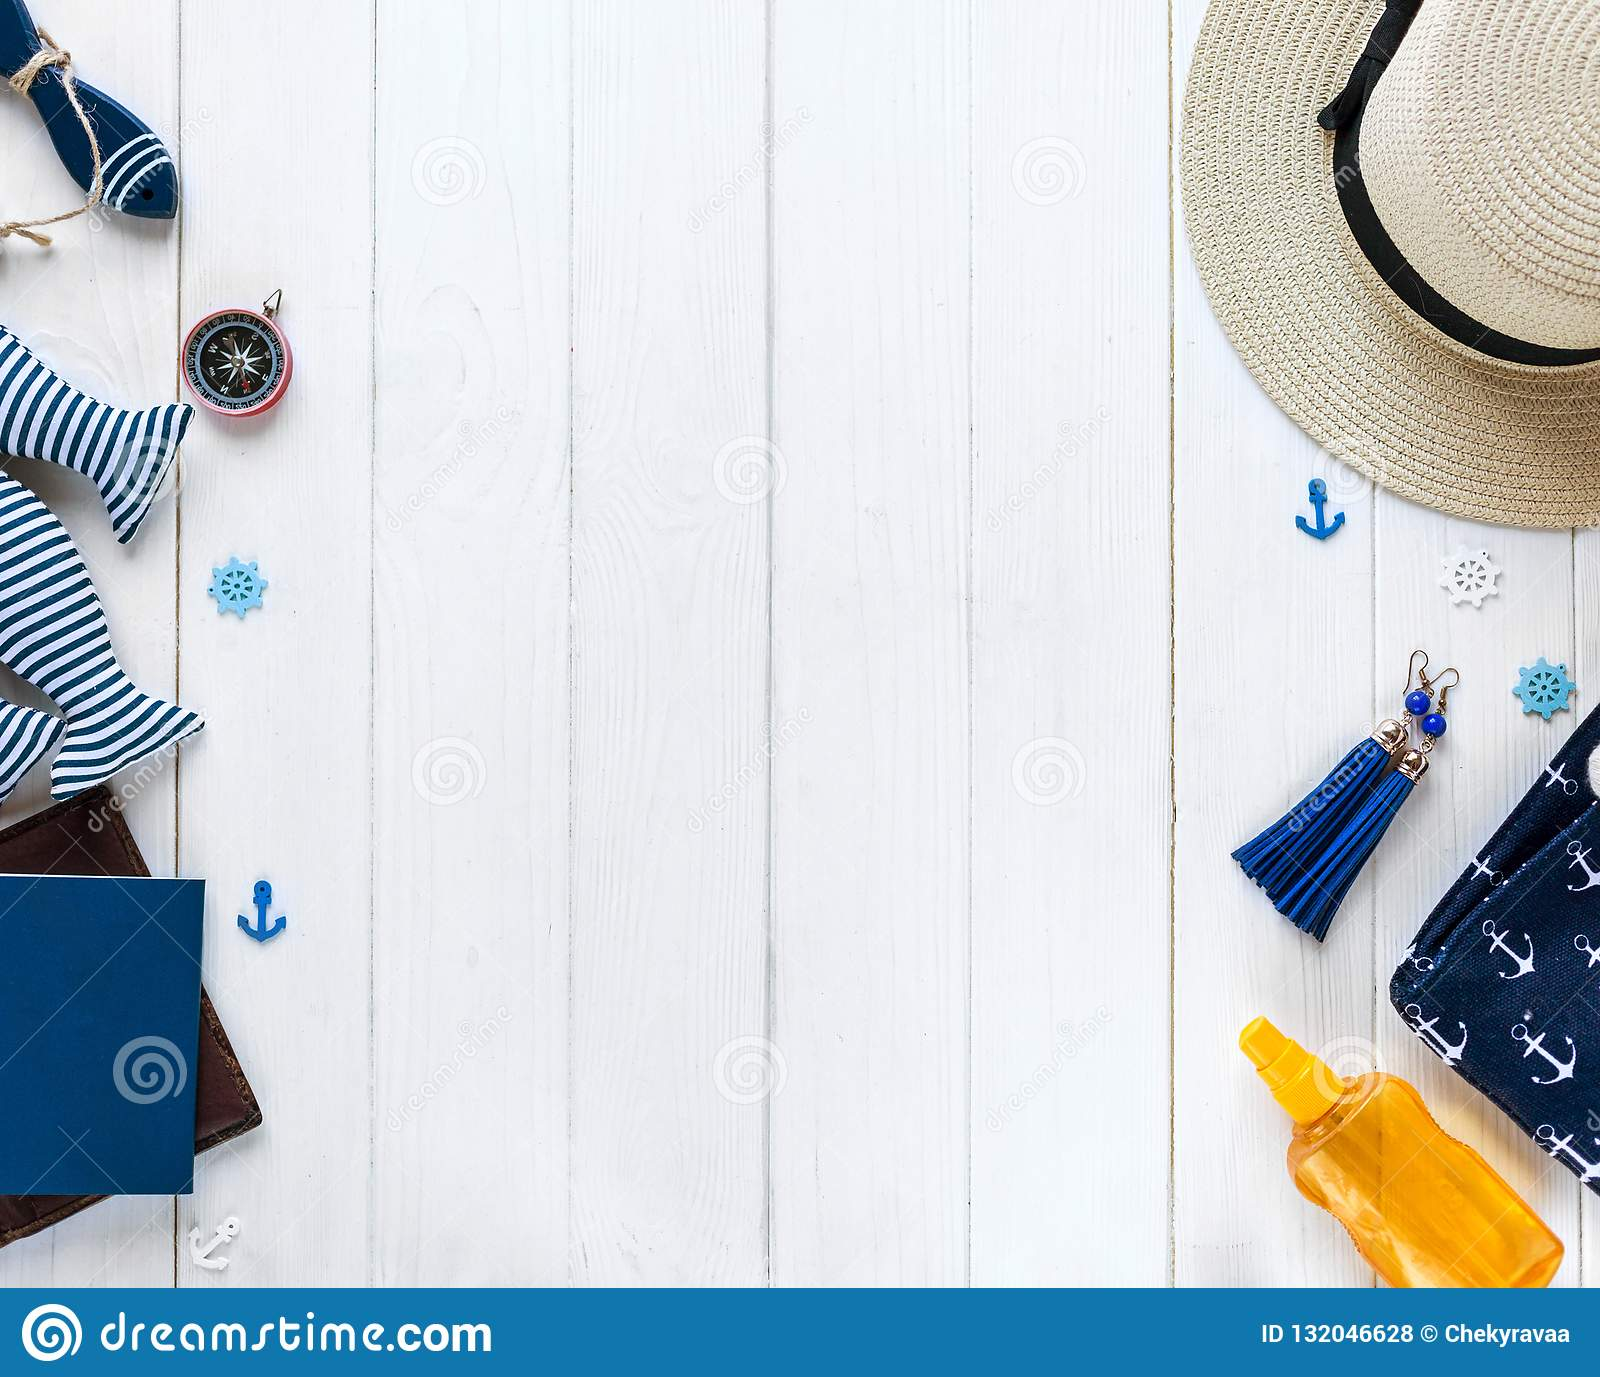 Marine items on wooden background. Sea objects: straw hat, swimsuit, fish, shells . flat lay, copy space. vacation and travel